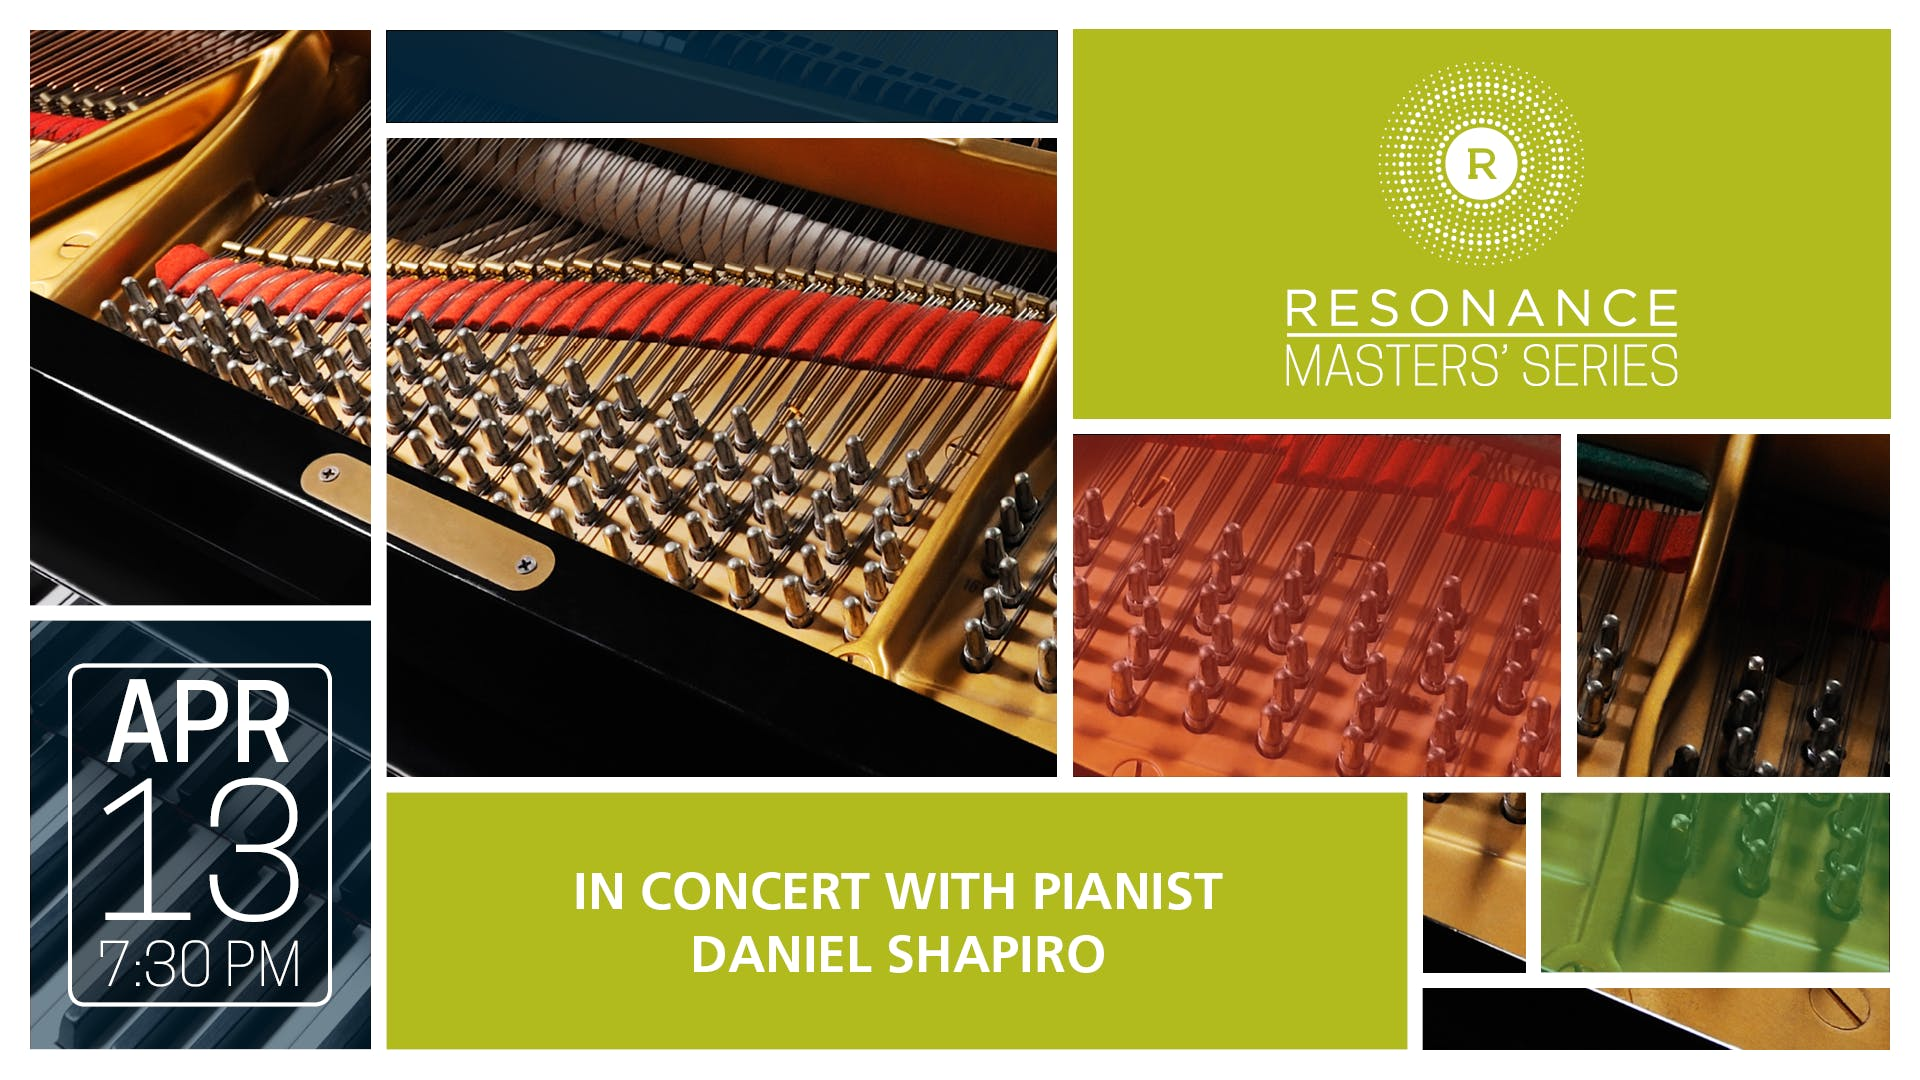 RESONANCE MASTERS' SERIES PRESENTS DANIEL SHA